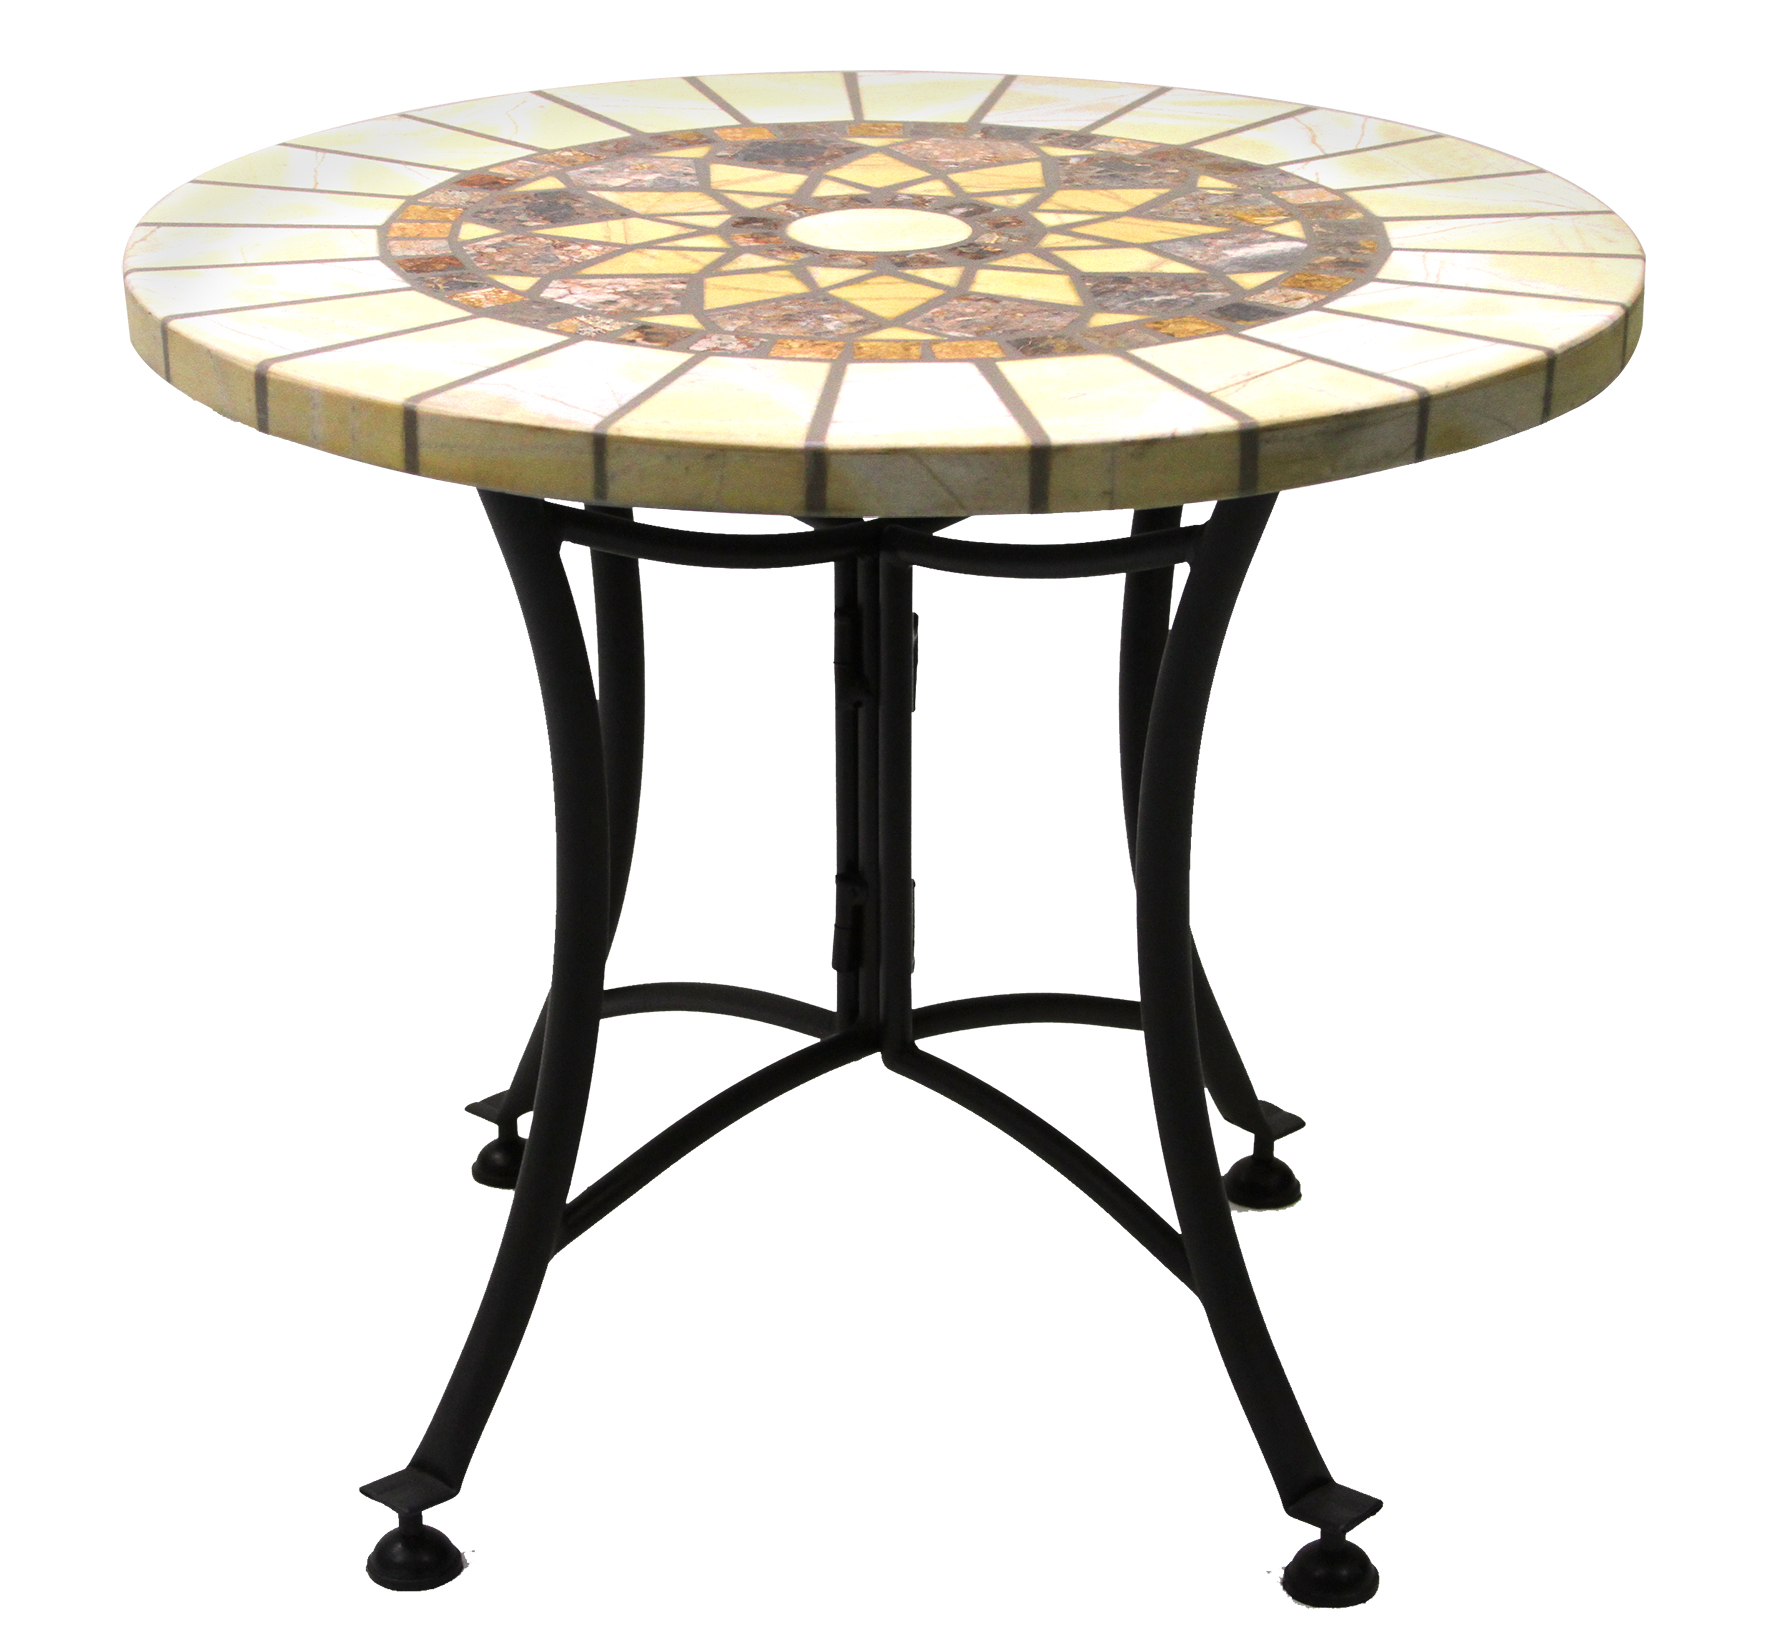 probably super best small marble end table jockboymusic lovely outdoor accent with occasional tables beautiful honeycomb mosaic metal base target round coffee stainless steel legs